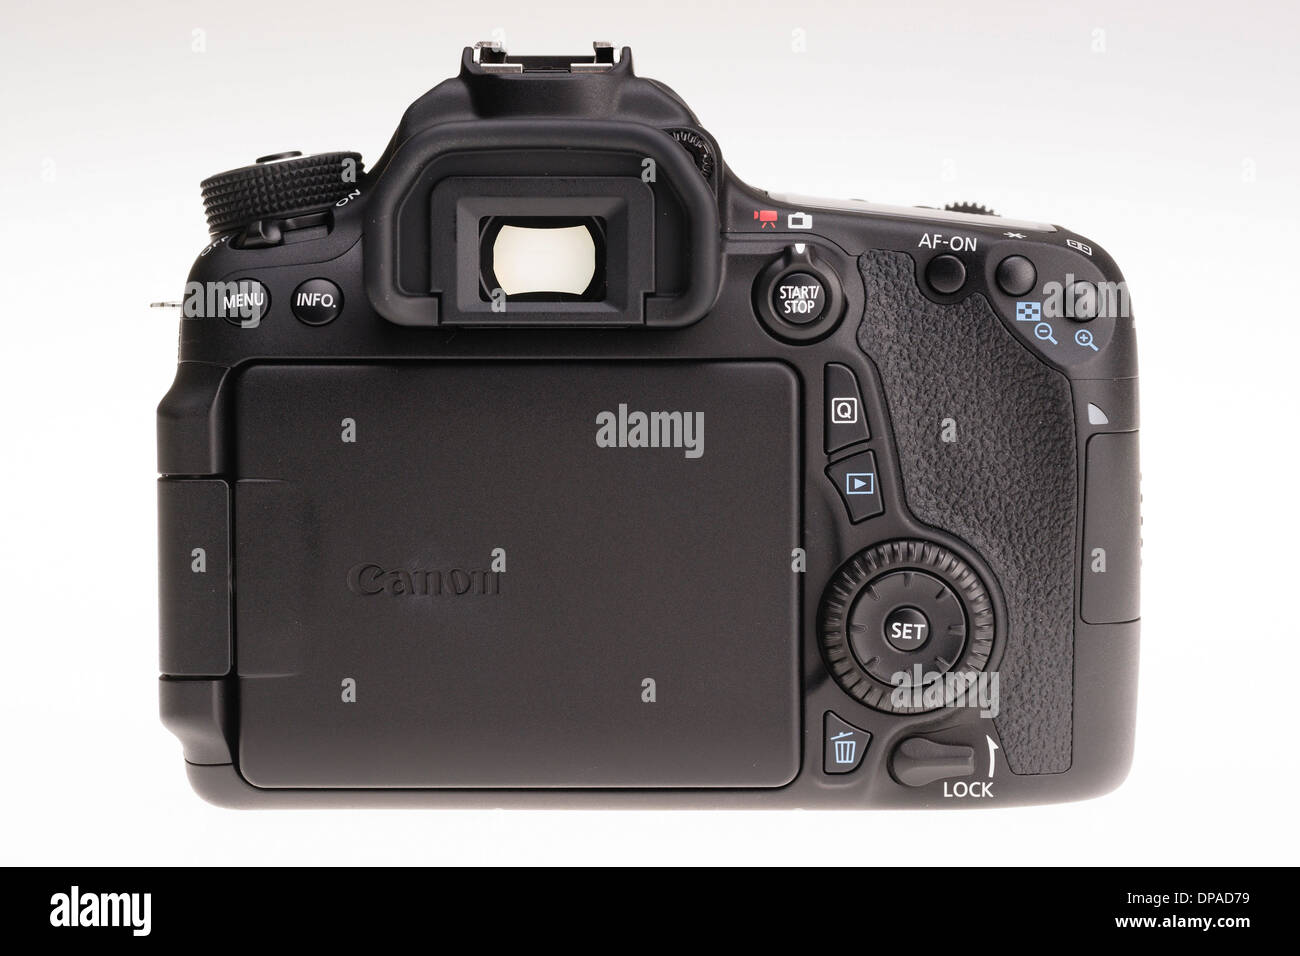 Digital photography equipment - Canon EOS 70D back view, screen ...